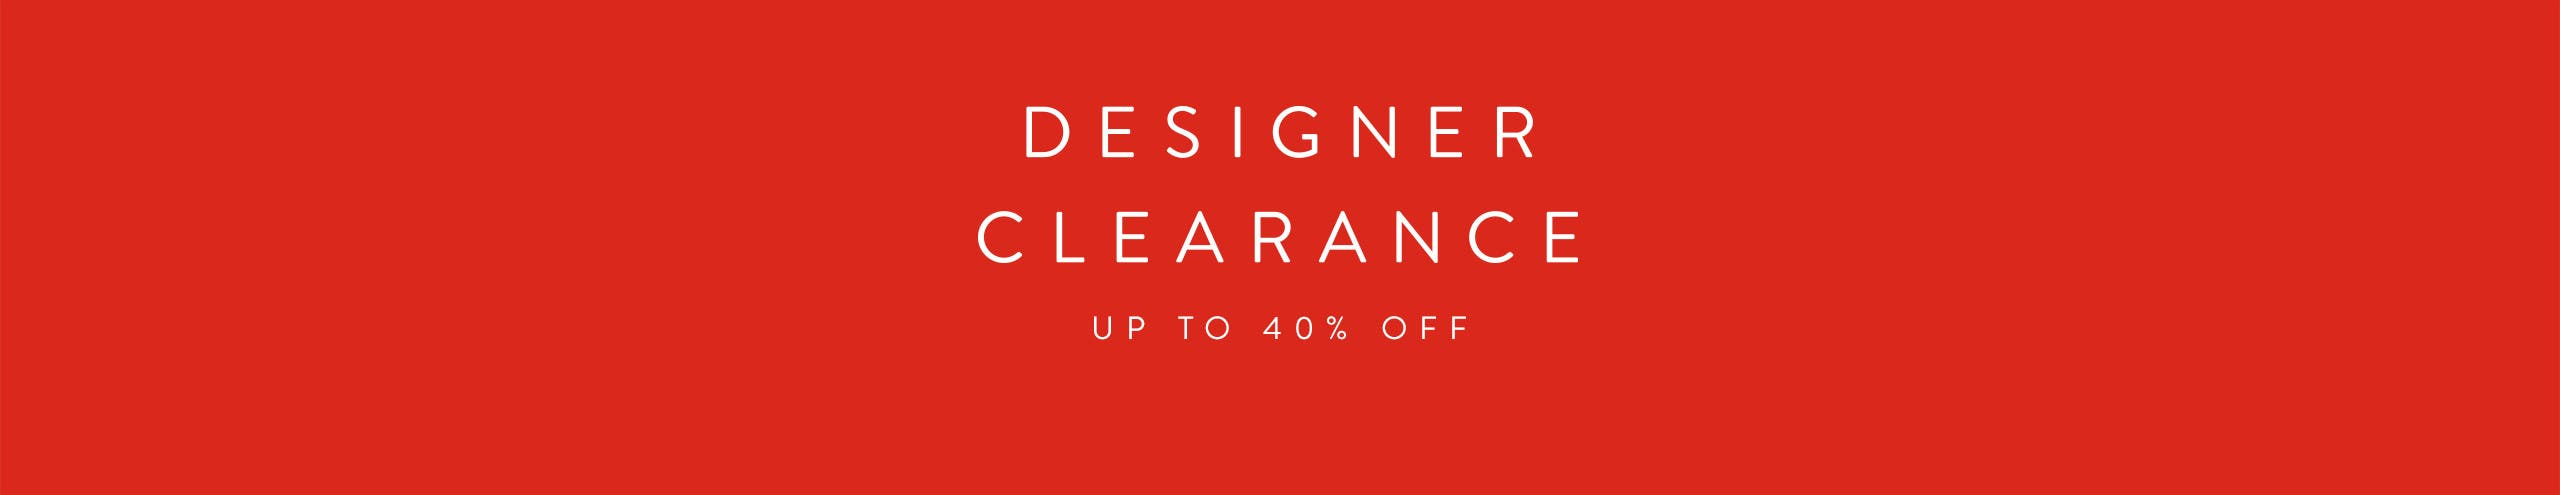 Women's Designer Clearance: up to 40% off.